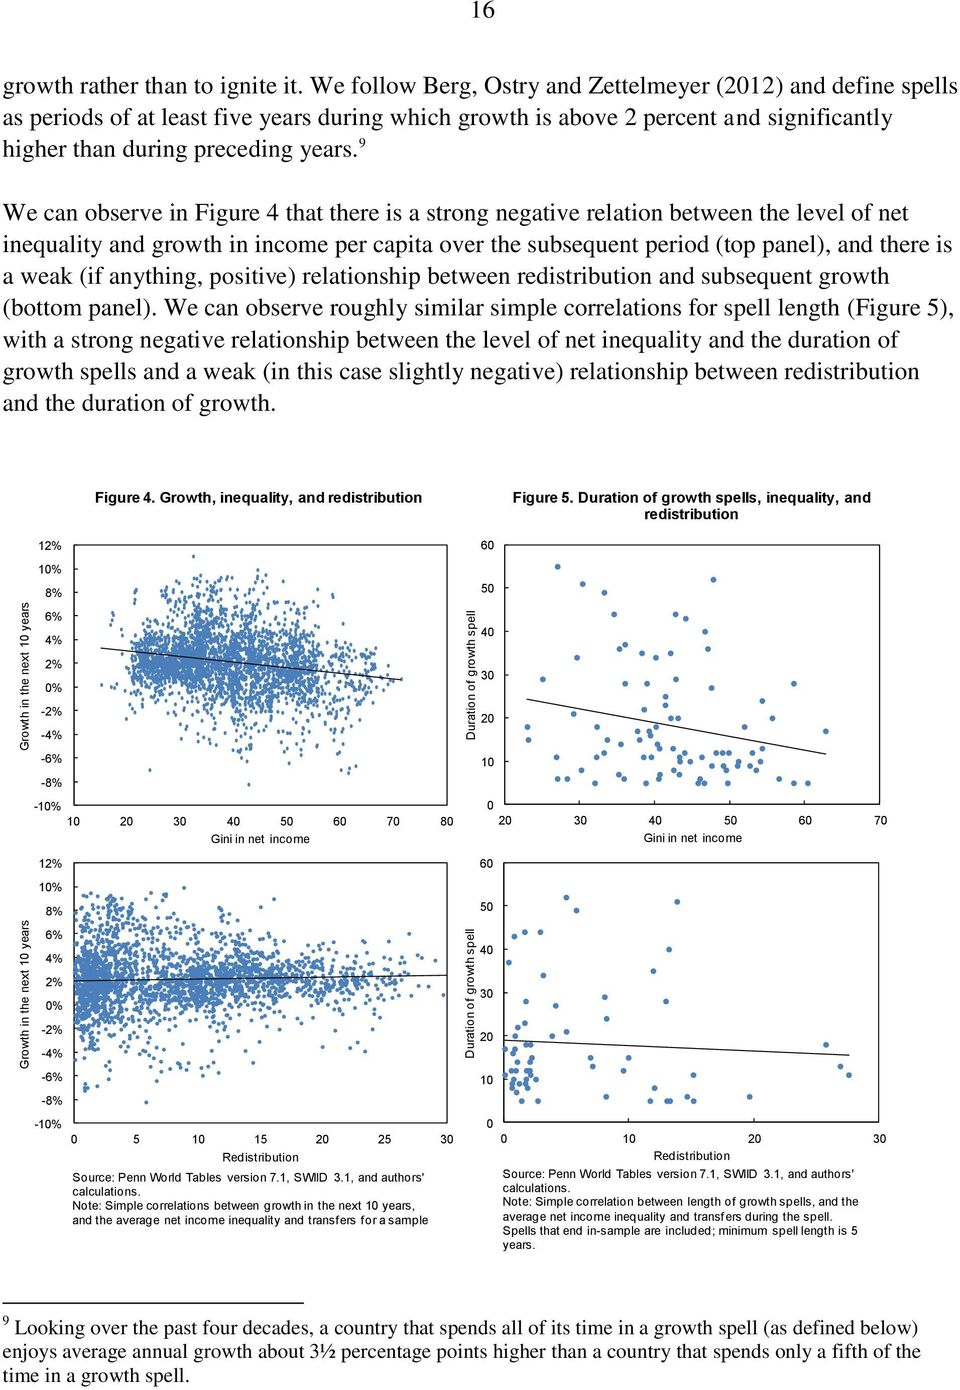 9 We can observe in Figure 4 that there is a strong negative relation between the level of net inequality and growth in income per capita over the subsequent period (top panel), and there is a weak